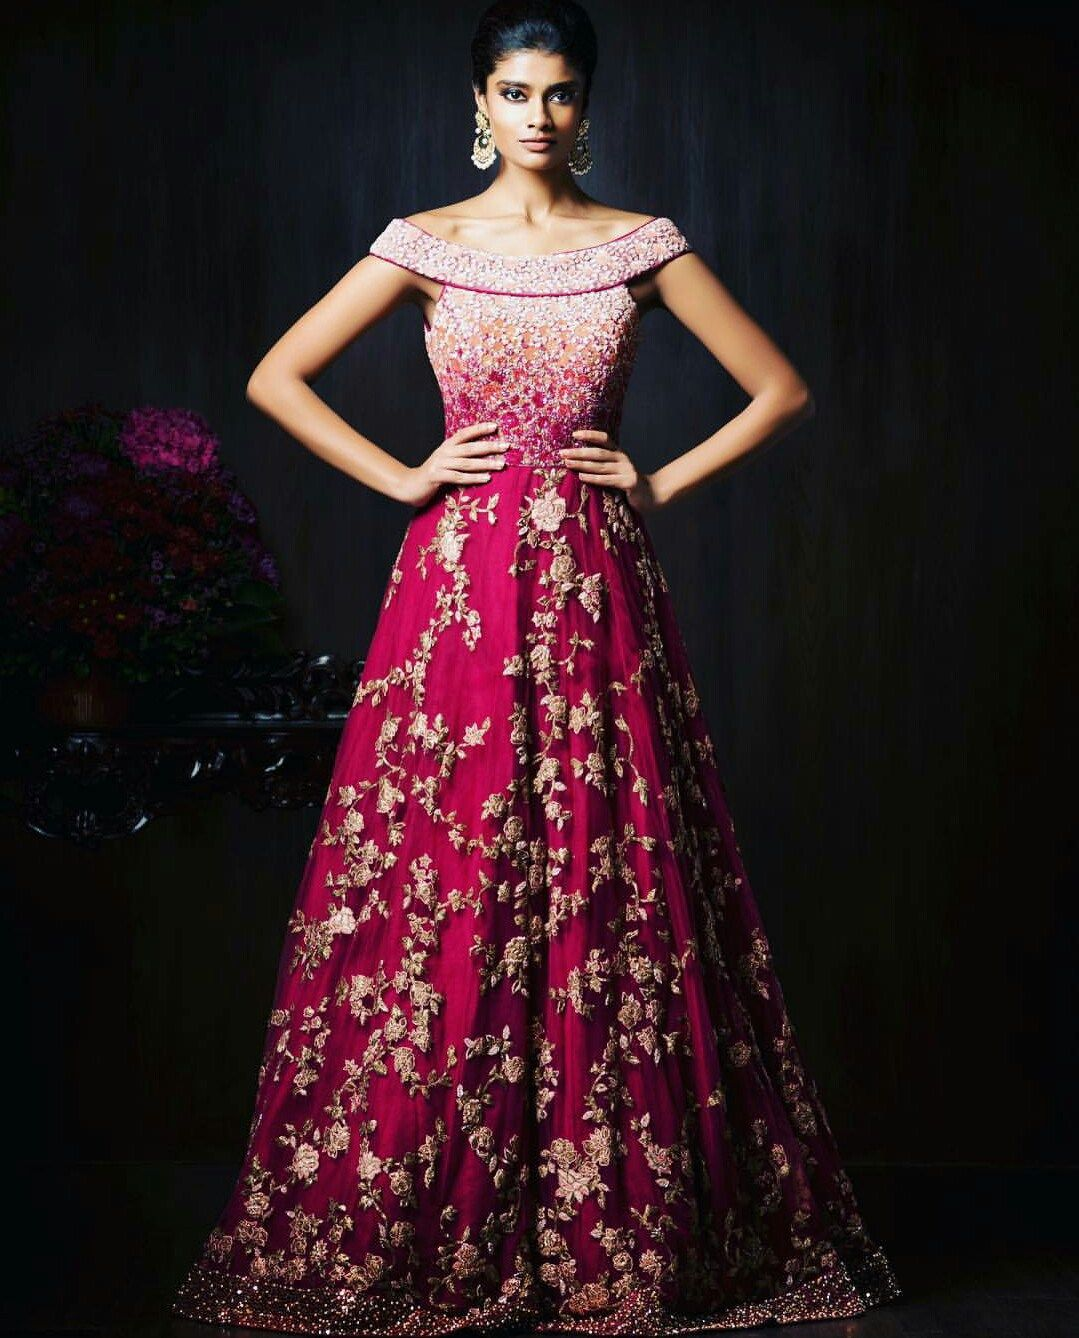 Reception Gowns For Indian Brides Shyamal Bhumika Pink Red Tail Gown Bridal Wear Wedding Bride Boat